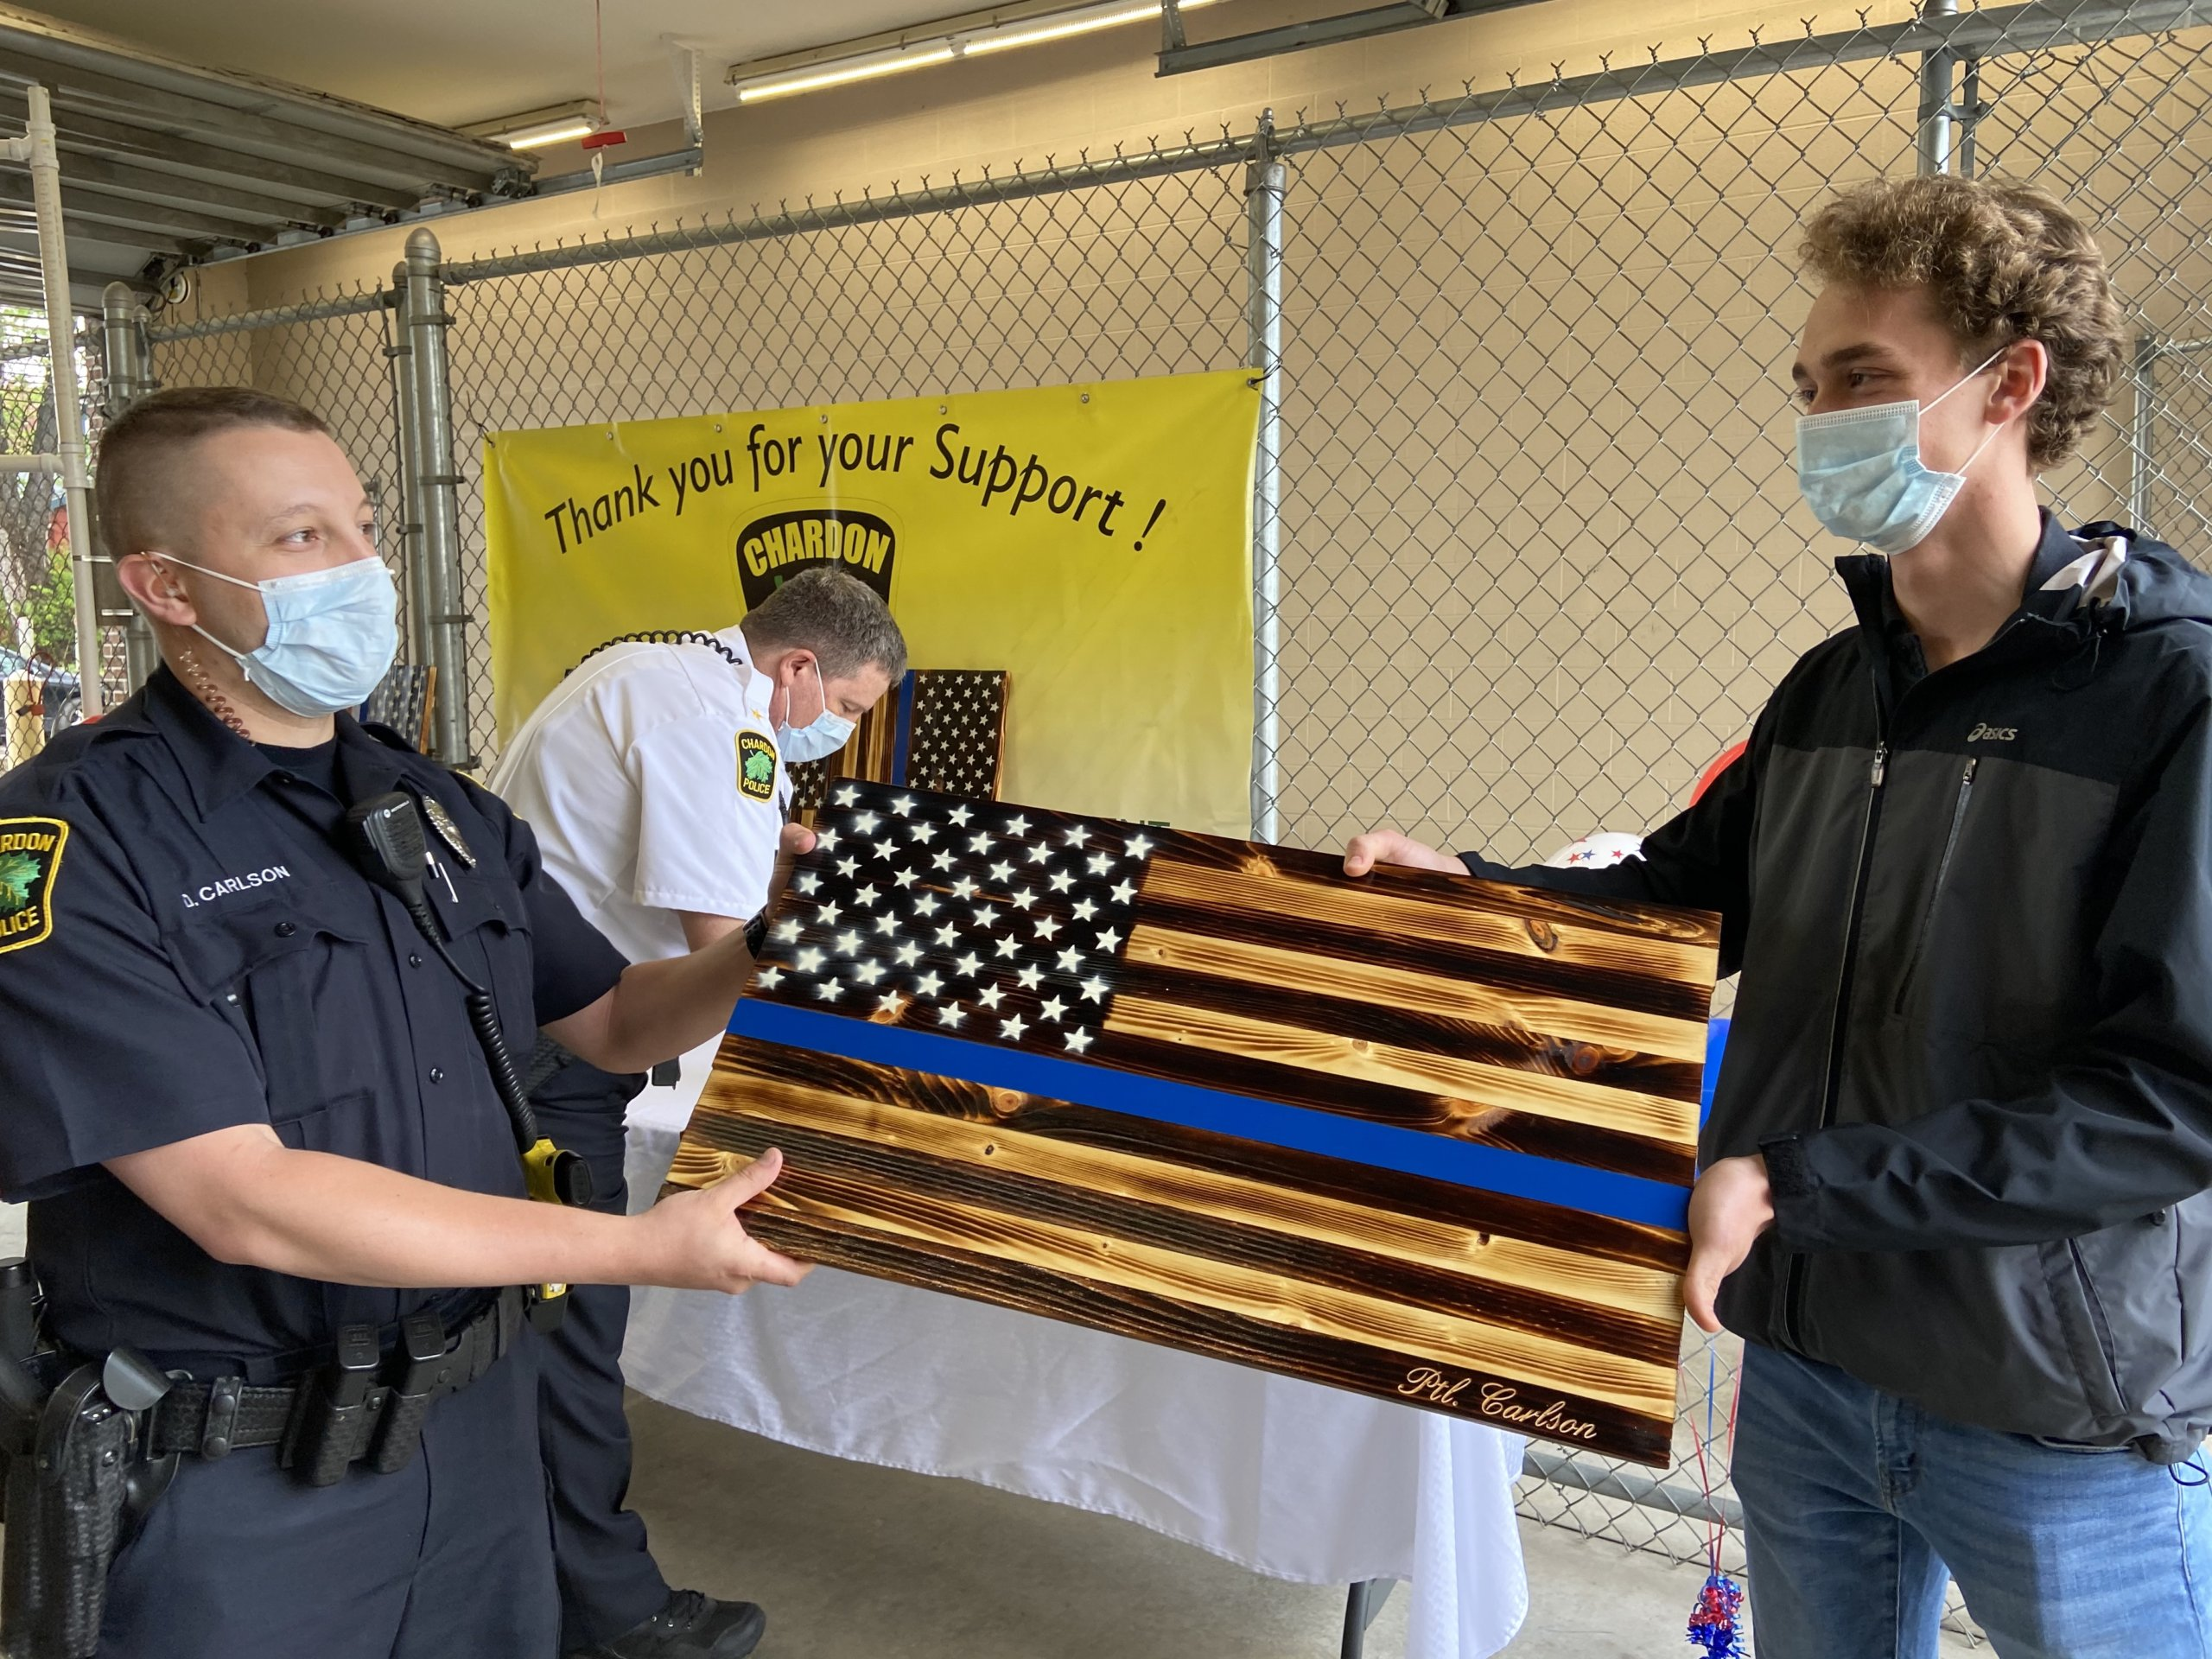 Chs Senior Honors Police With Wooden U S Flags Geauga County Maple Leaf